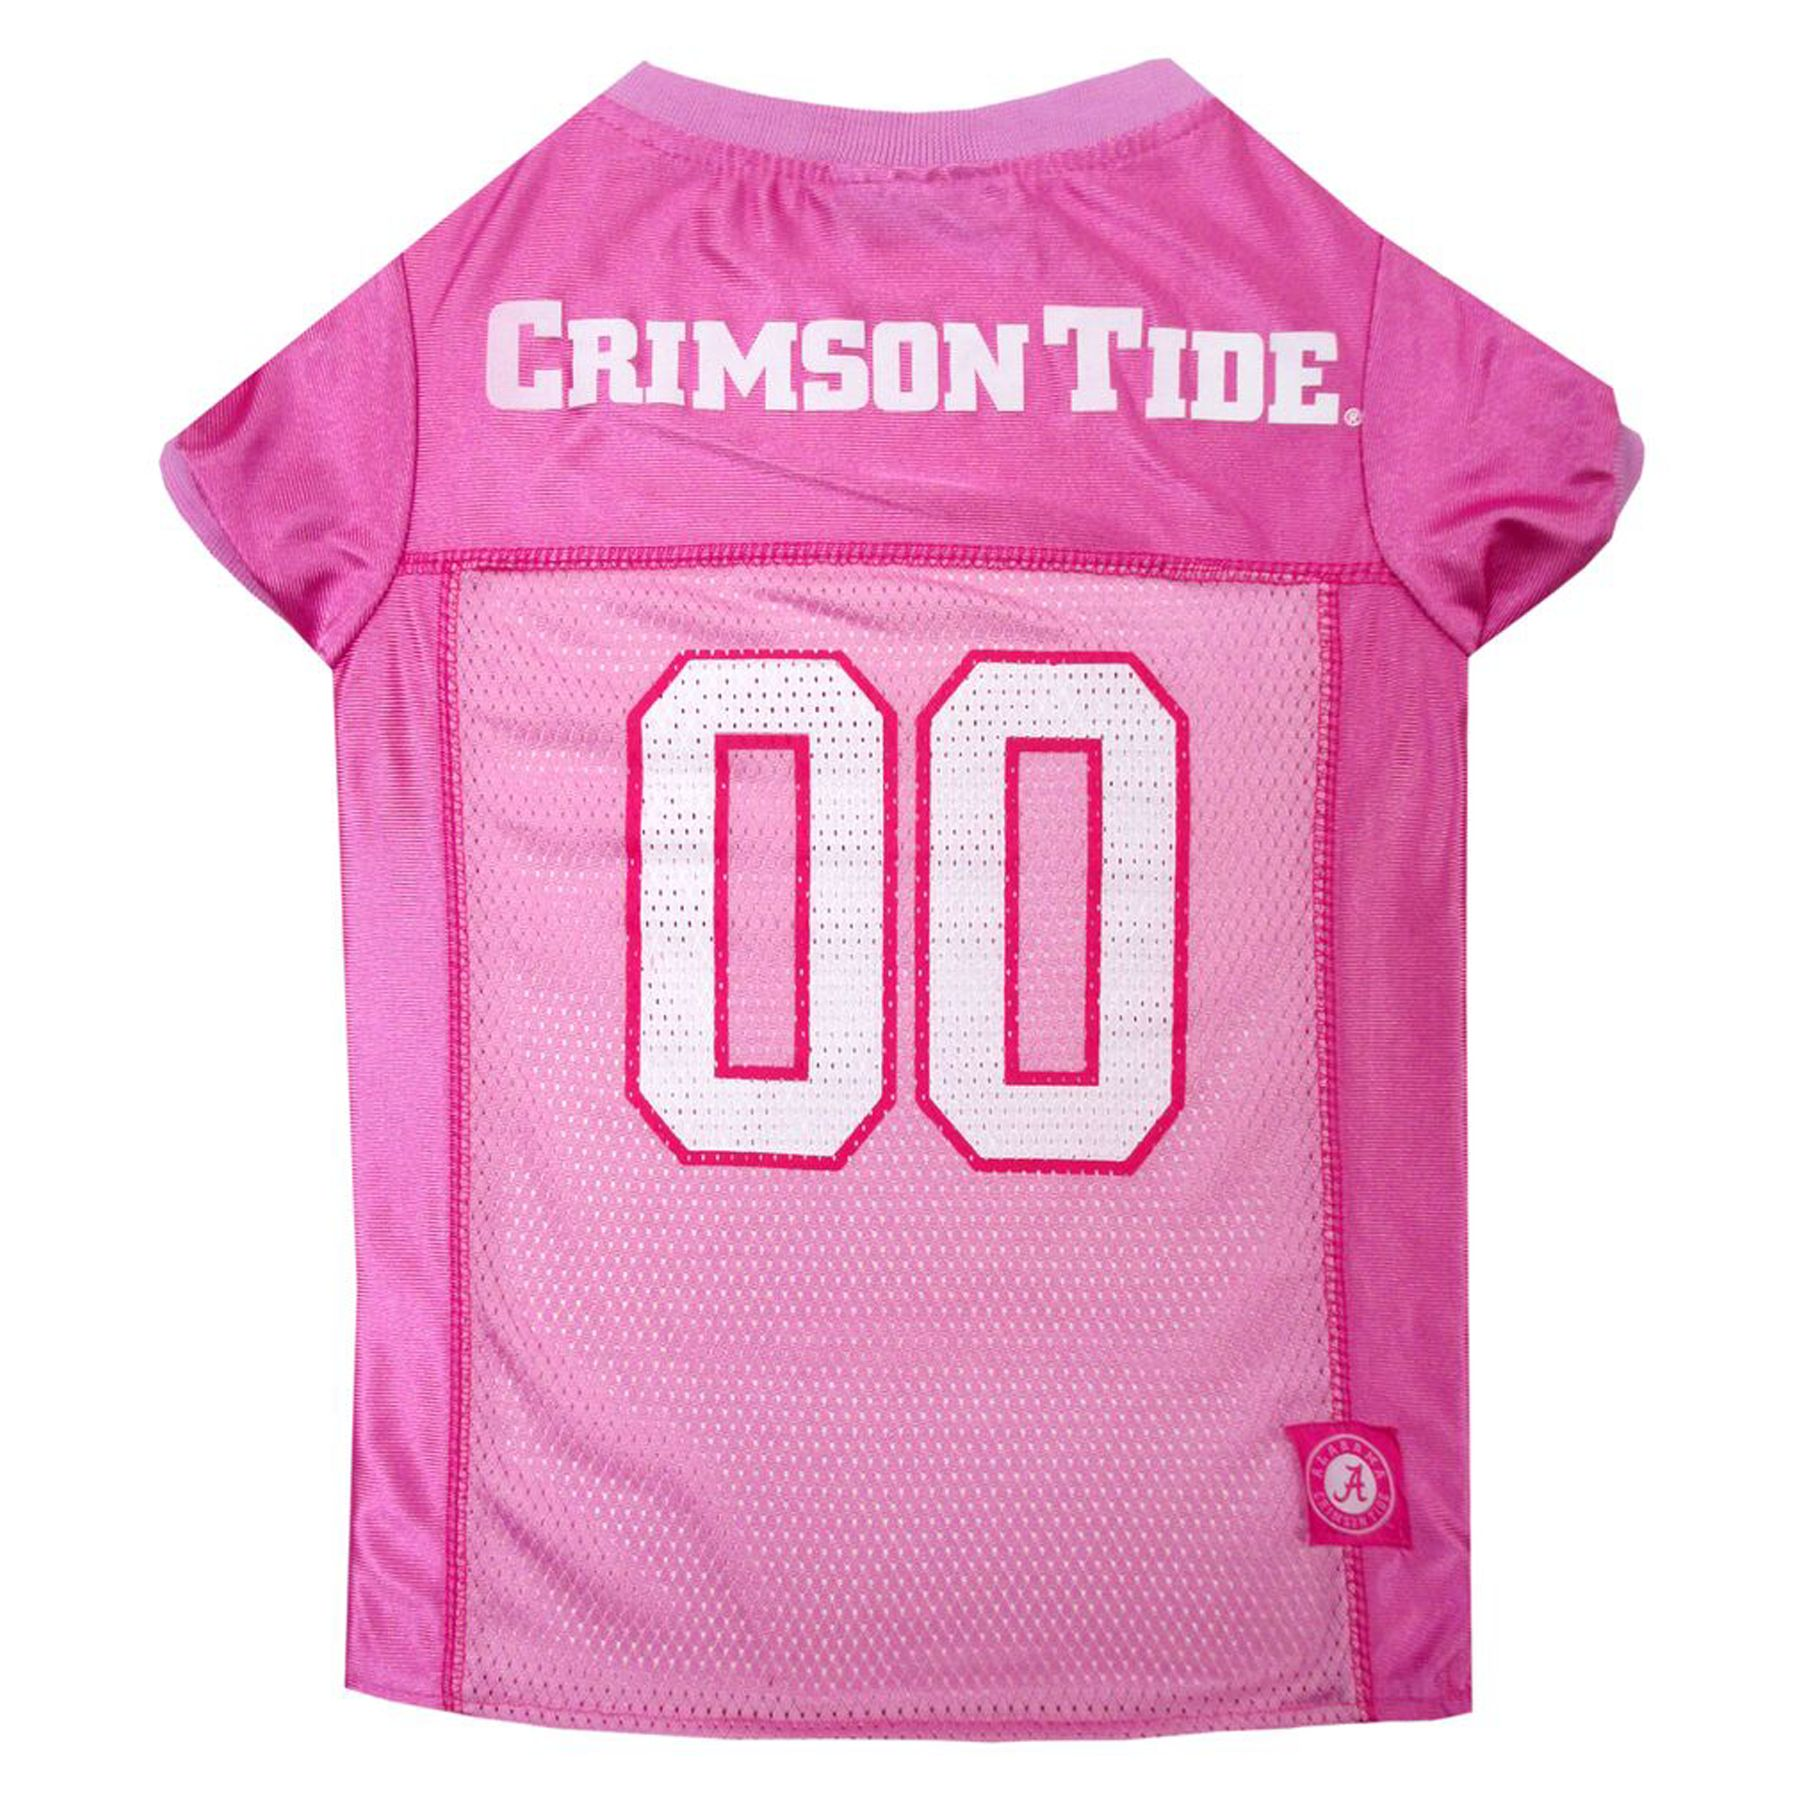 University of Alabama Crimson Tide Ncaa Jersey size: Large, Pink, Pets First 5243536